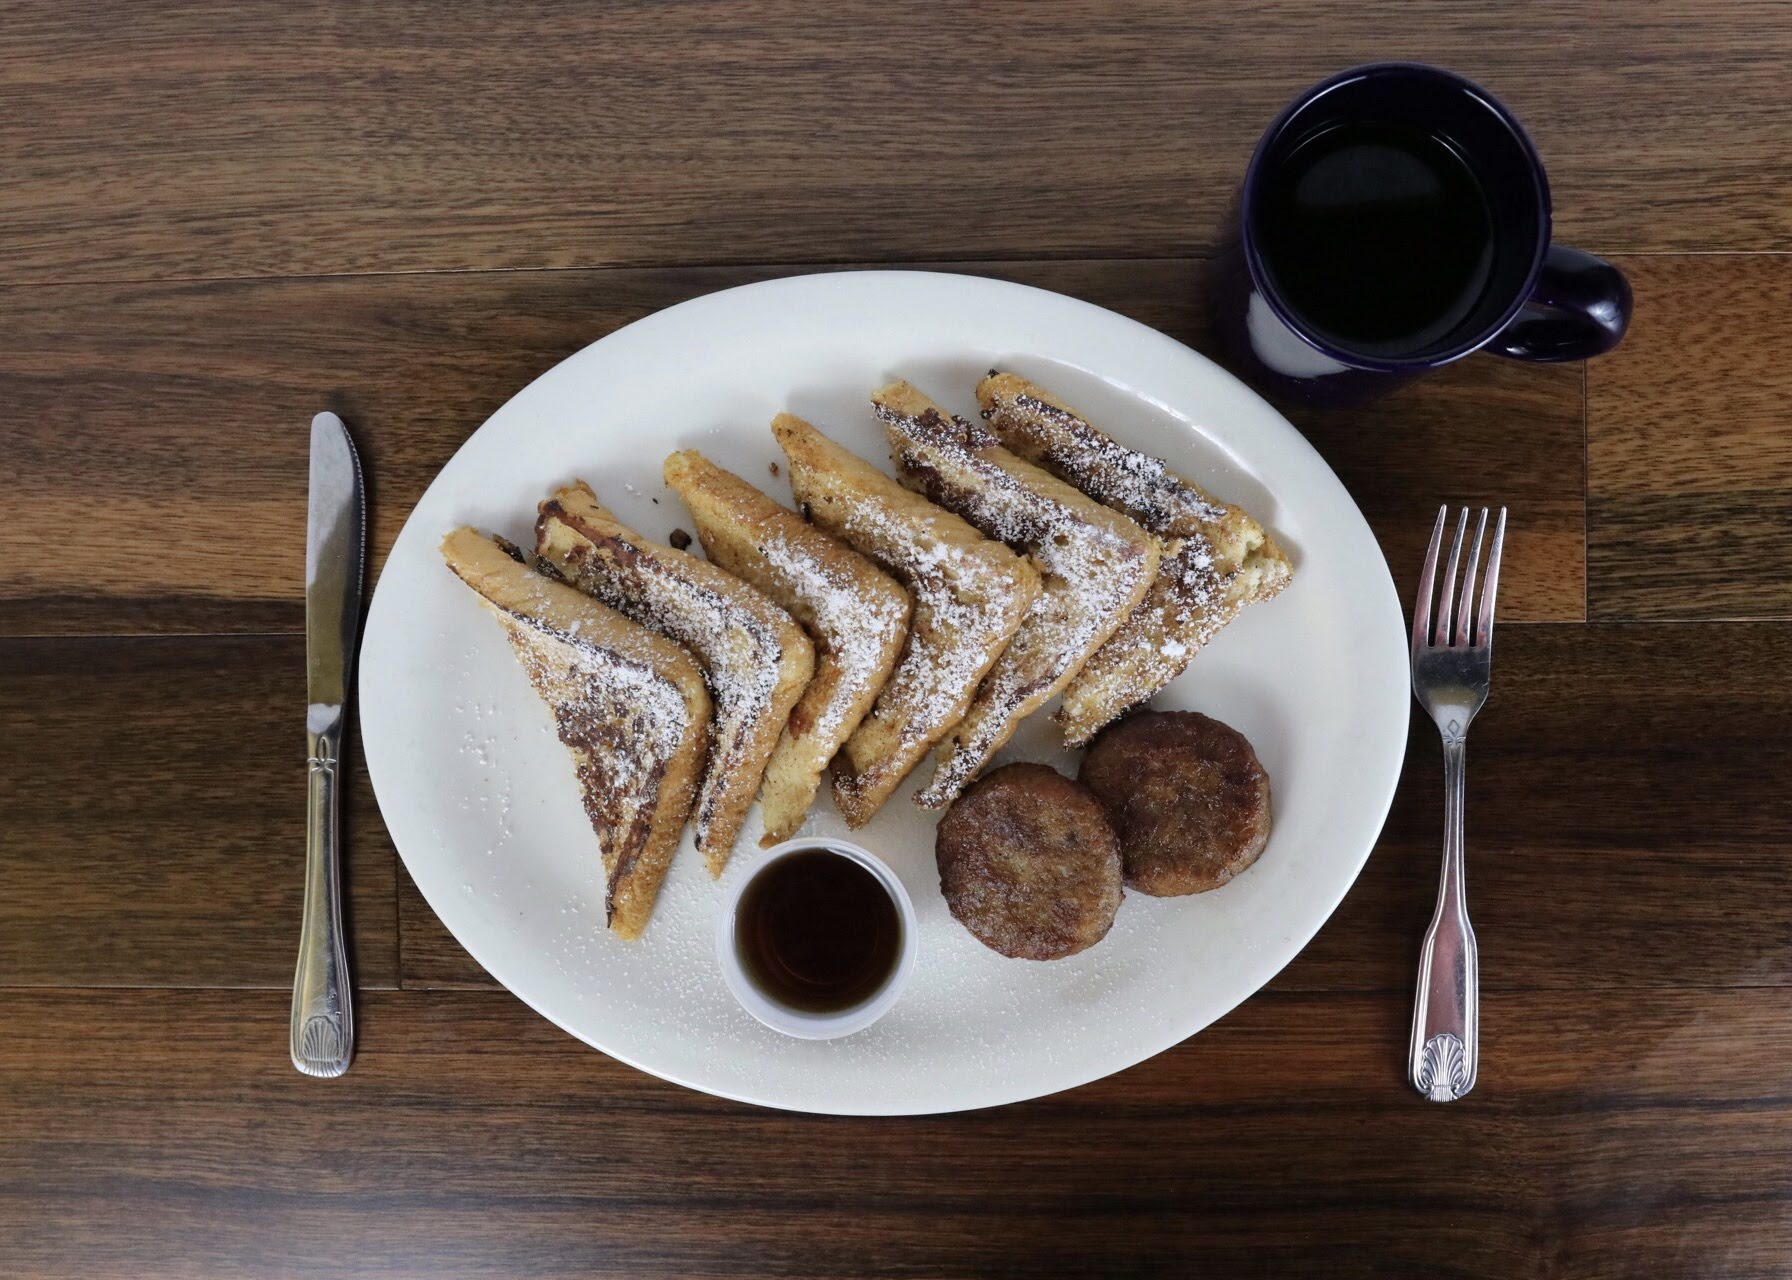 Plate of French toast with maple syrup and a cup of coffee